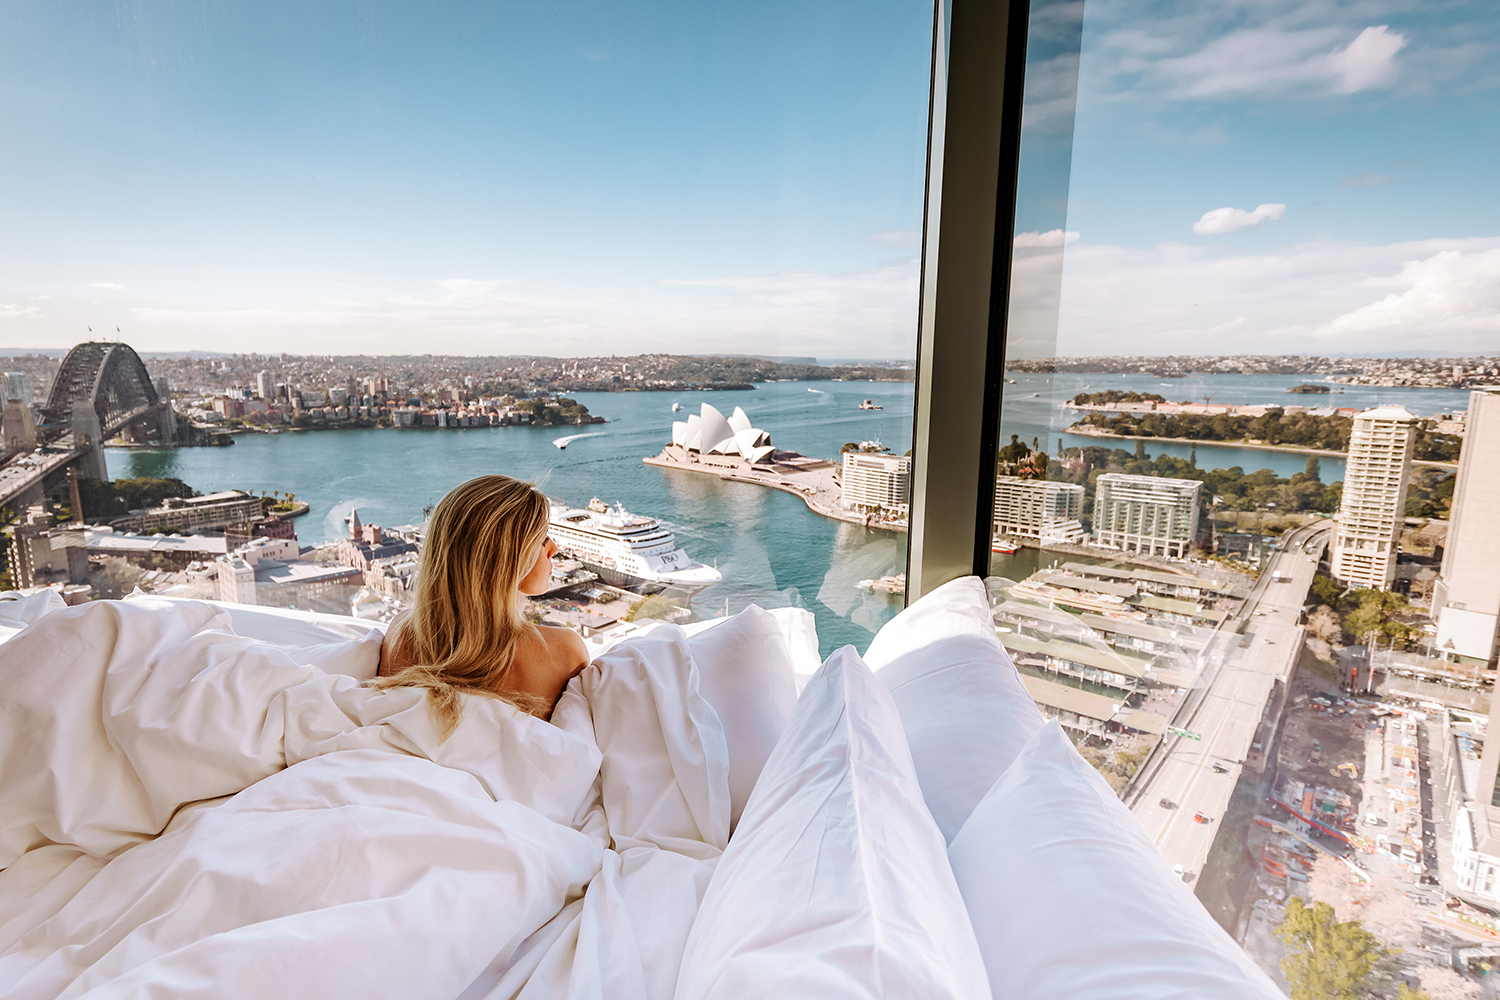 Positioned in the dress circle of Sydney Harbour, the panoramic views of Sydney Opera House and Sydney Harbour Bridge enhance the luxurious glamour of Sydney's destination hotel.